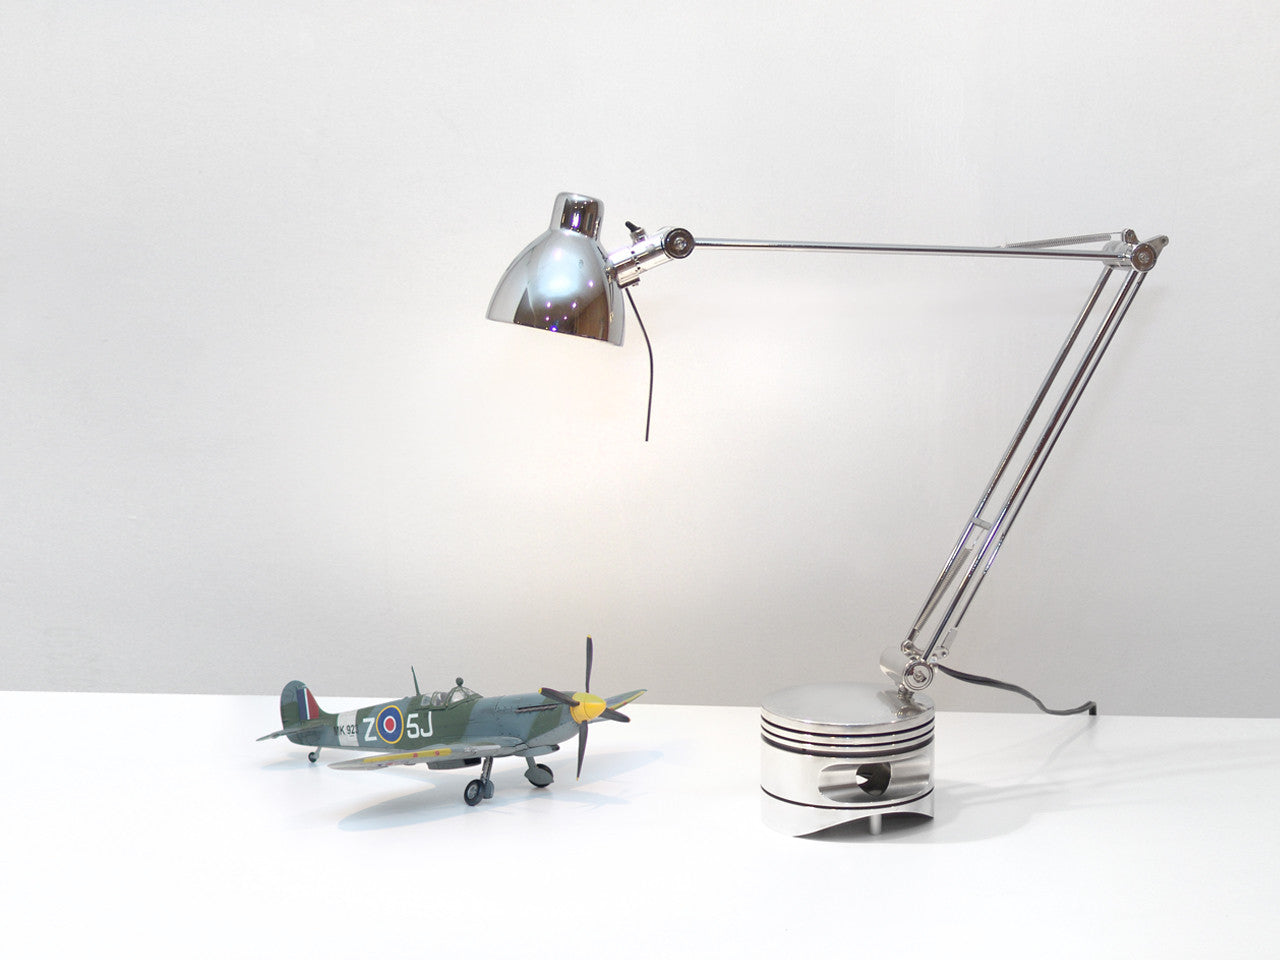 Radial Engine Piston Lamp Mk-I